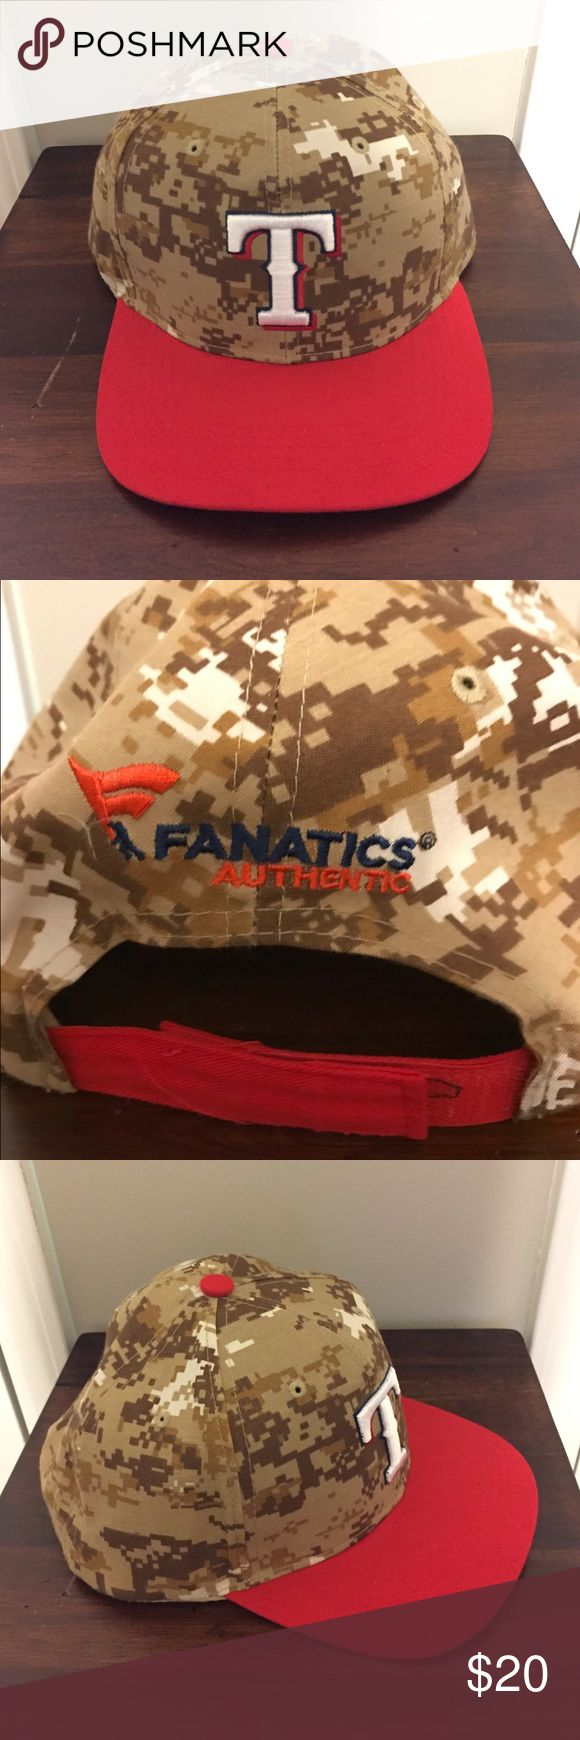 Authentic Texas Rangers Flat Brim Cap!⚾️ New without tags!!  AUTHENTIC Texas Rangers Desert Digital Camo Flat Brim Cap!! Bought on the FANATICS website. Never worn. It has an adjustable velcro strap in back as seen in picture. Still has the cardboard piece inside of hat. Baseball season is coming up soon so be sure to get your deal today!! Feel free to ask any questions. All of our prices are negotiable!! ⚾️❤️️ Fanatics Accessories Hats